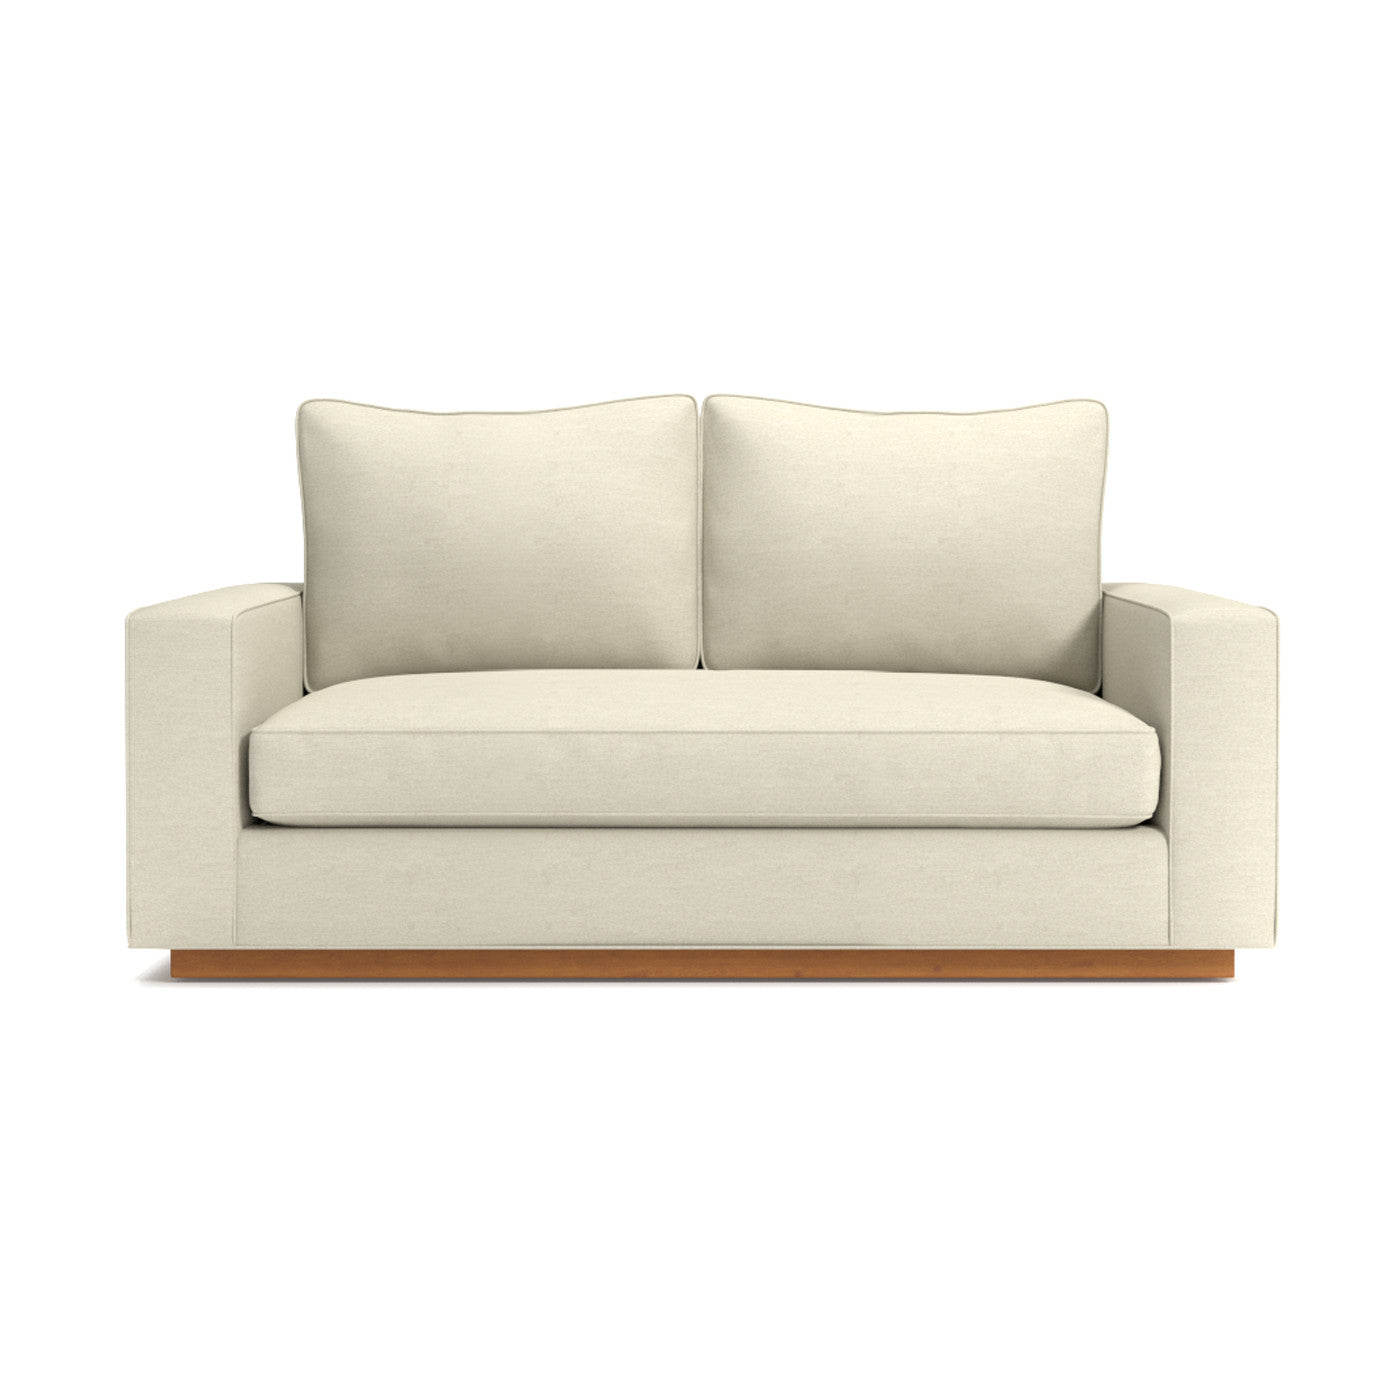 Harper Apartment Size Sofa From Kyle Schuneman